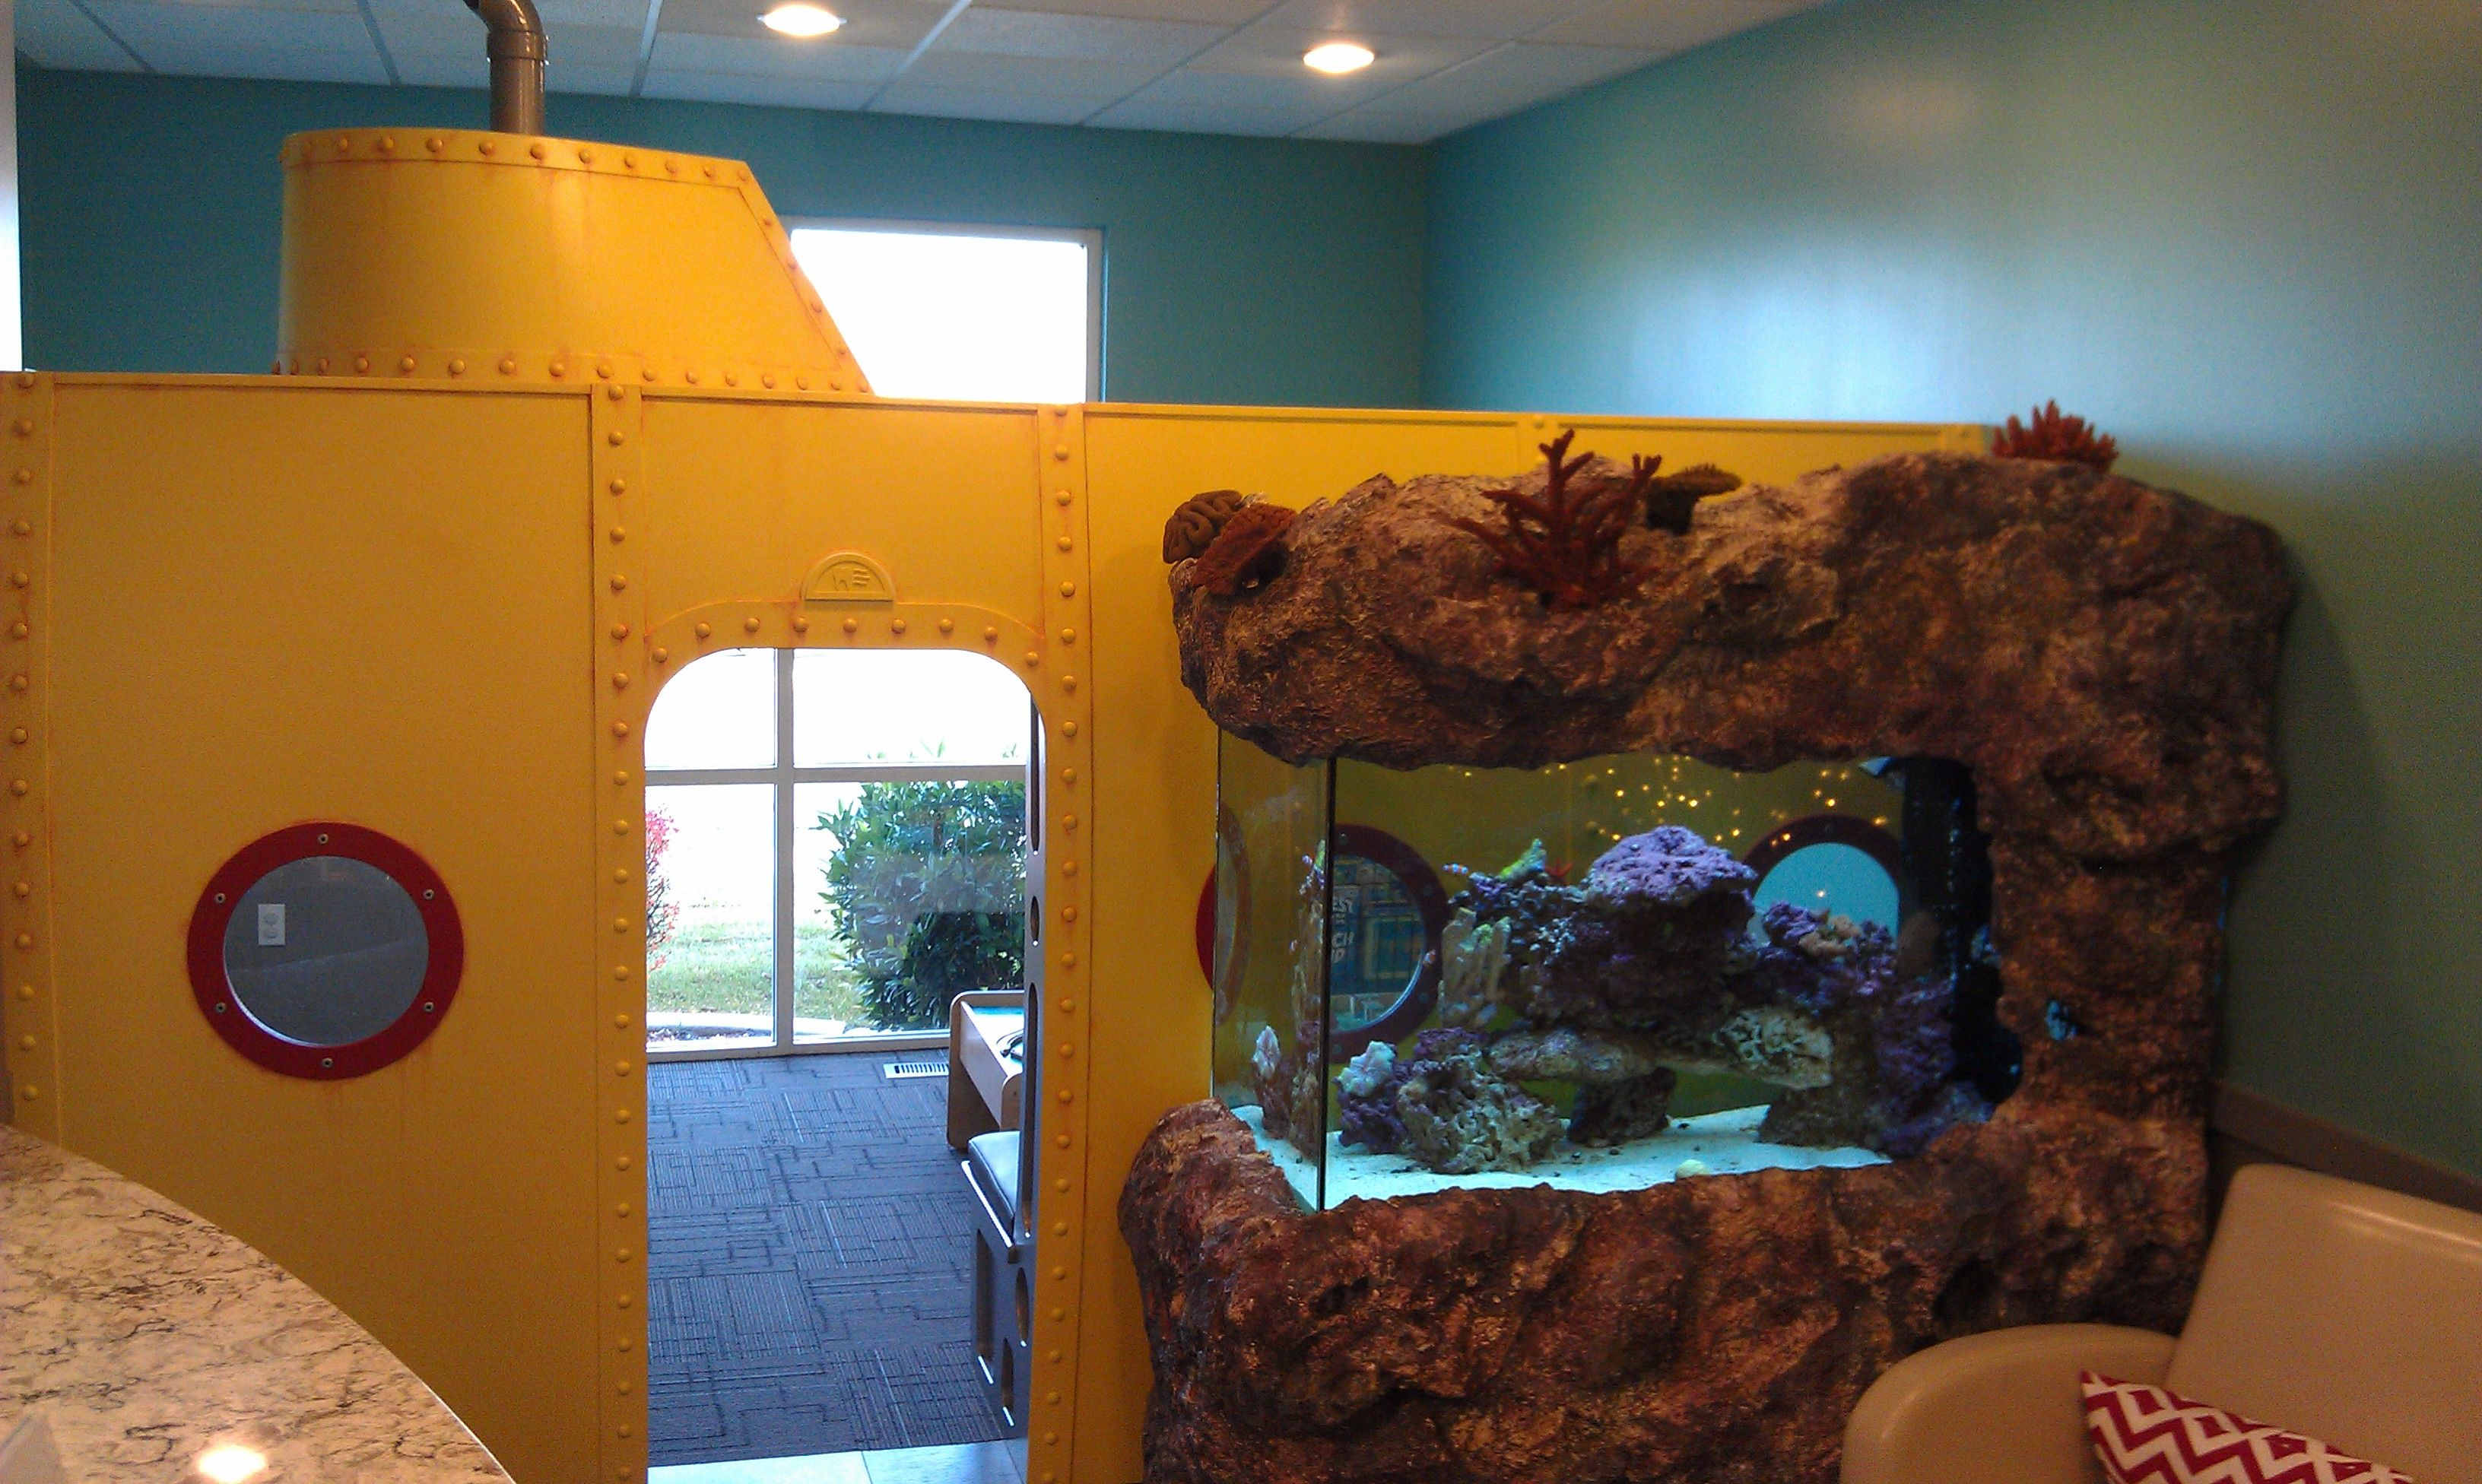 Oceansurf Theme Custom Built Submarine And Aquarium In Pediatric Dental Office